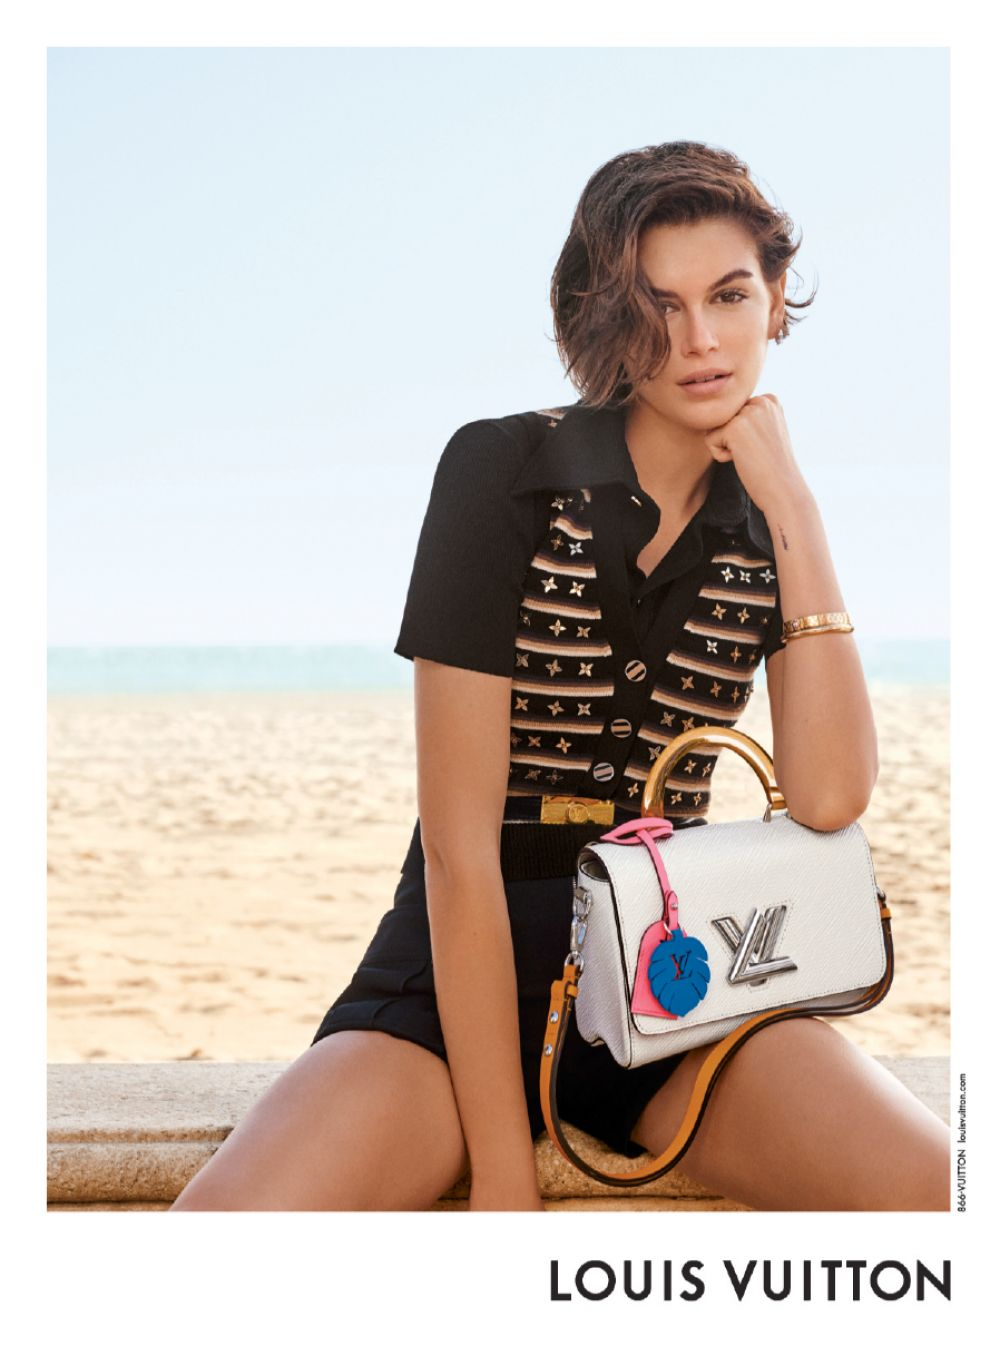 Kaia Gerber for Louis Vuitton Twist Bags for Spring 2020 Campaign 4